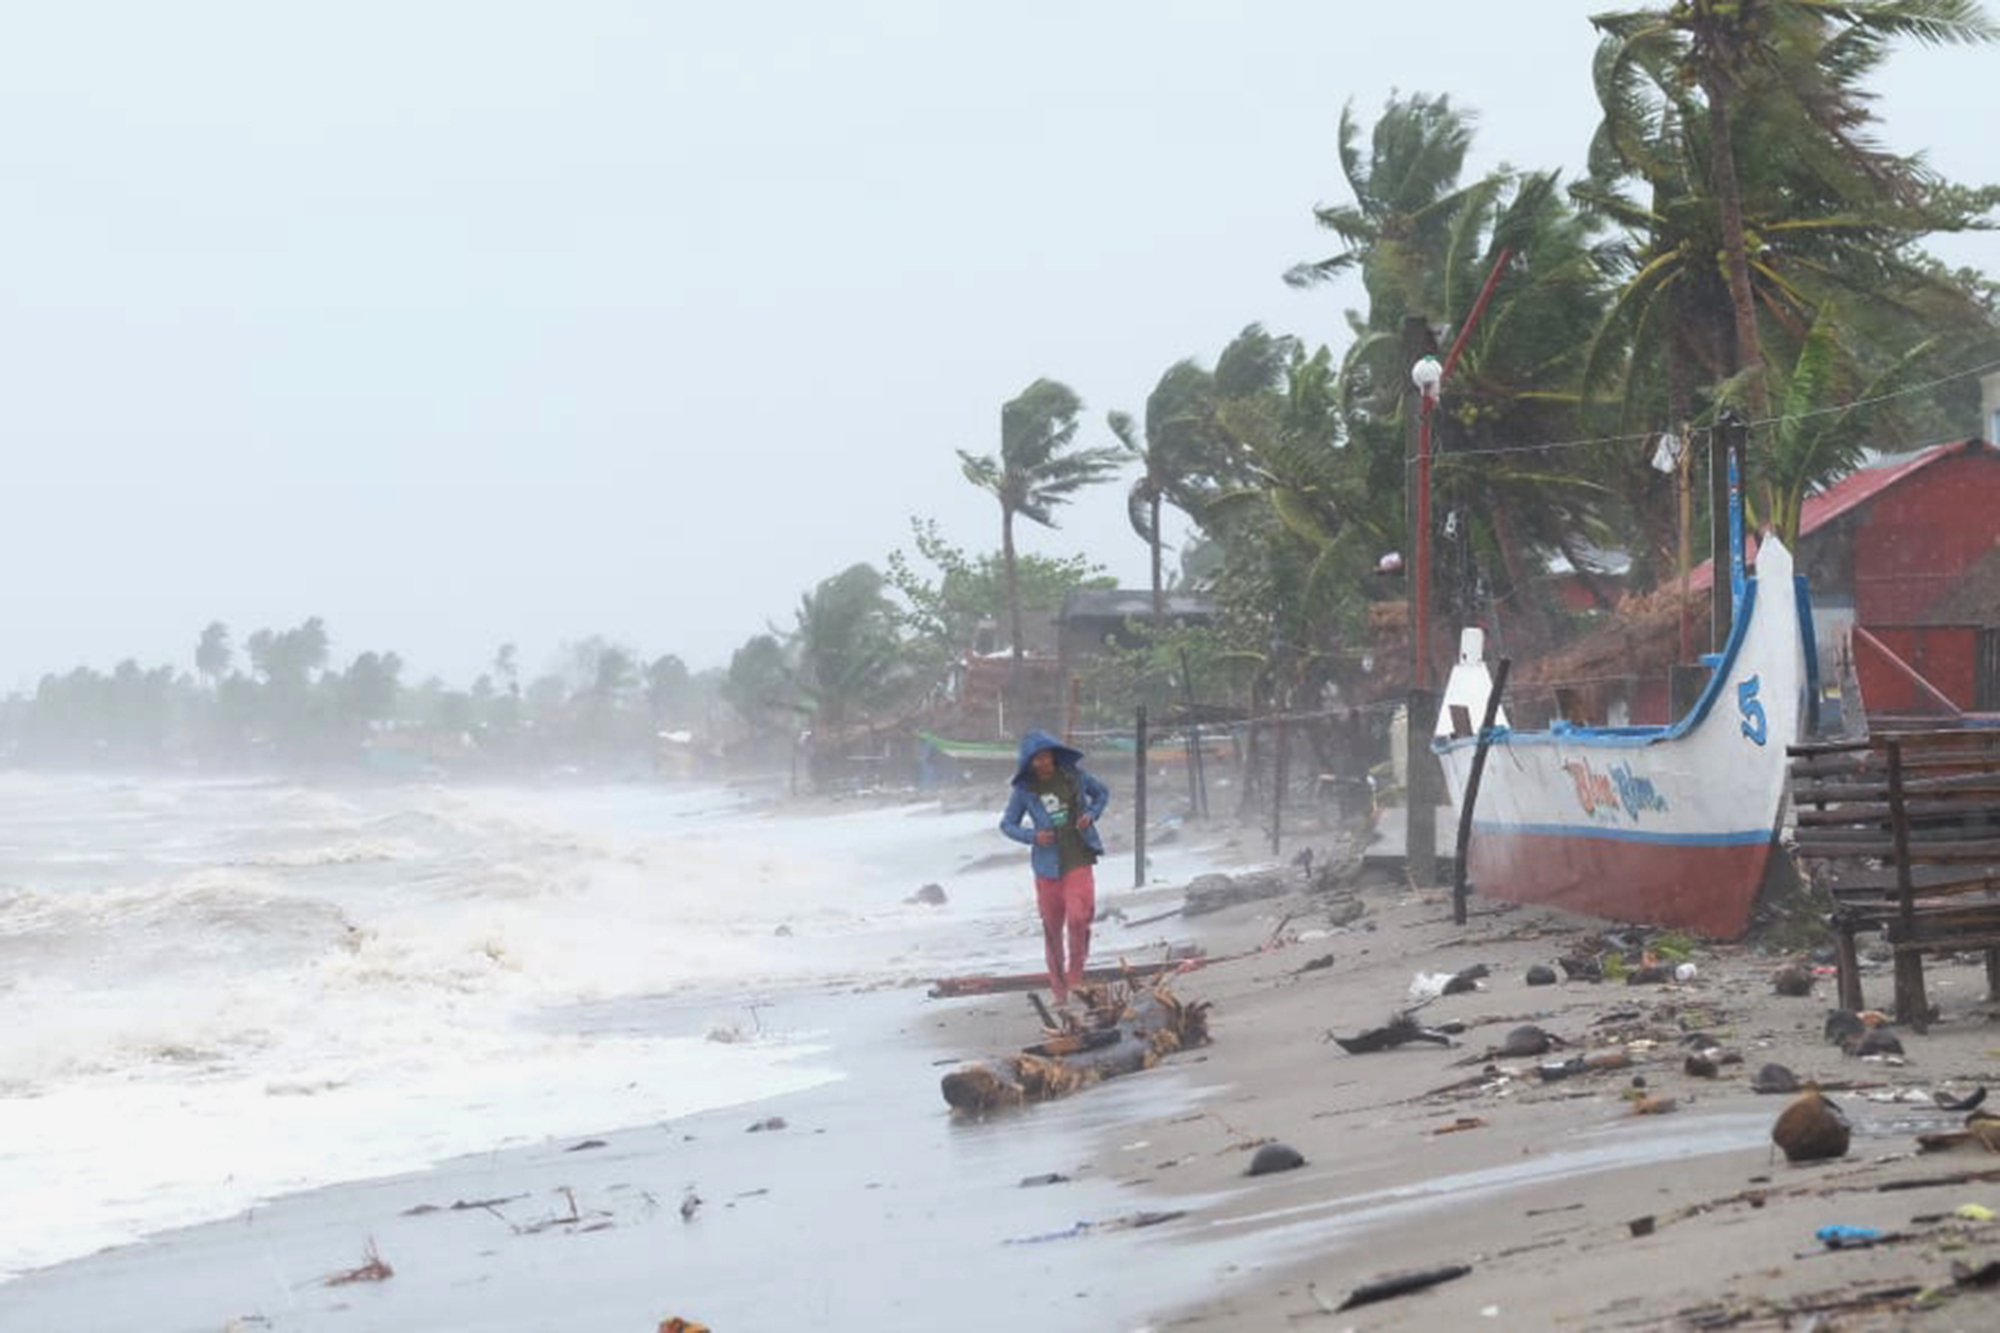 Strong waves batter the coast of Sorsogon province, central Philippines as a typhoon locally known as Goni hits the country on Nov. 1, 2020.